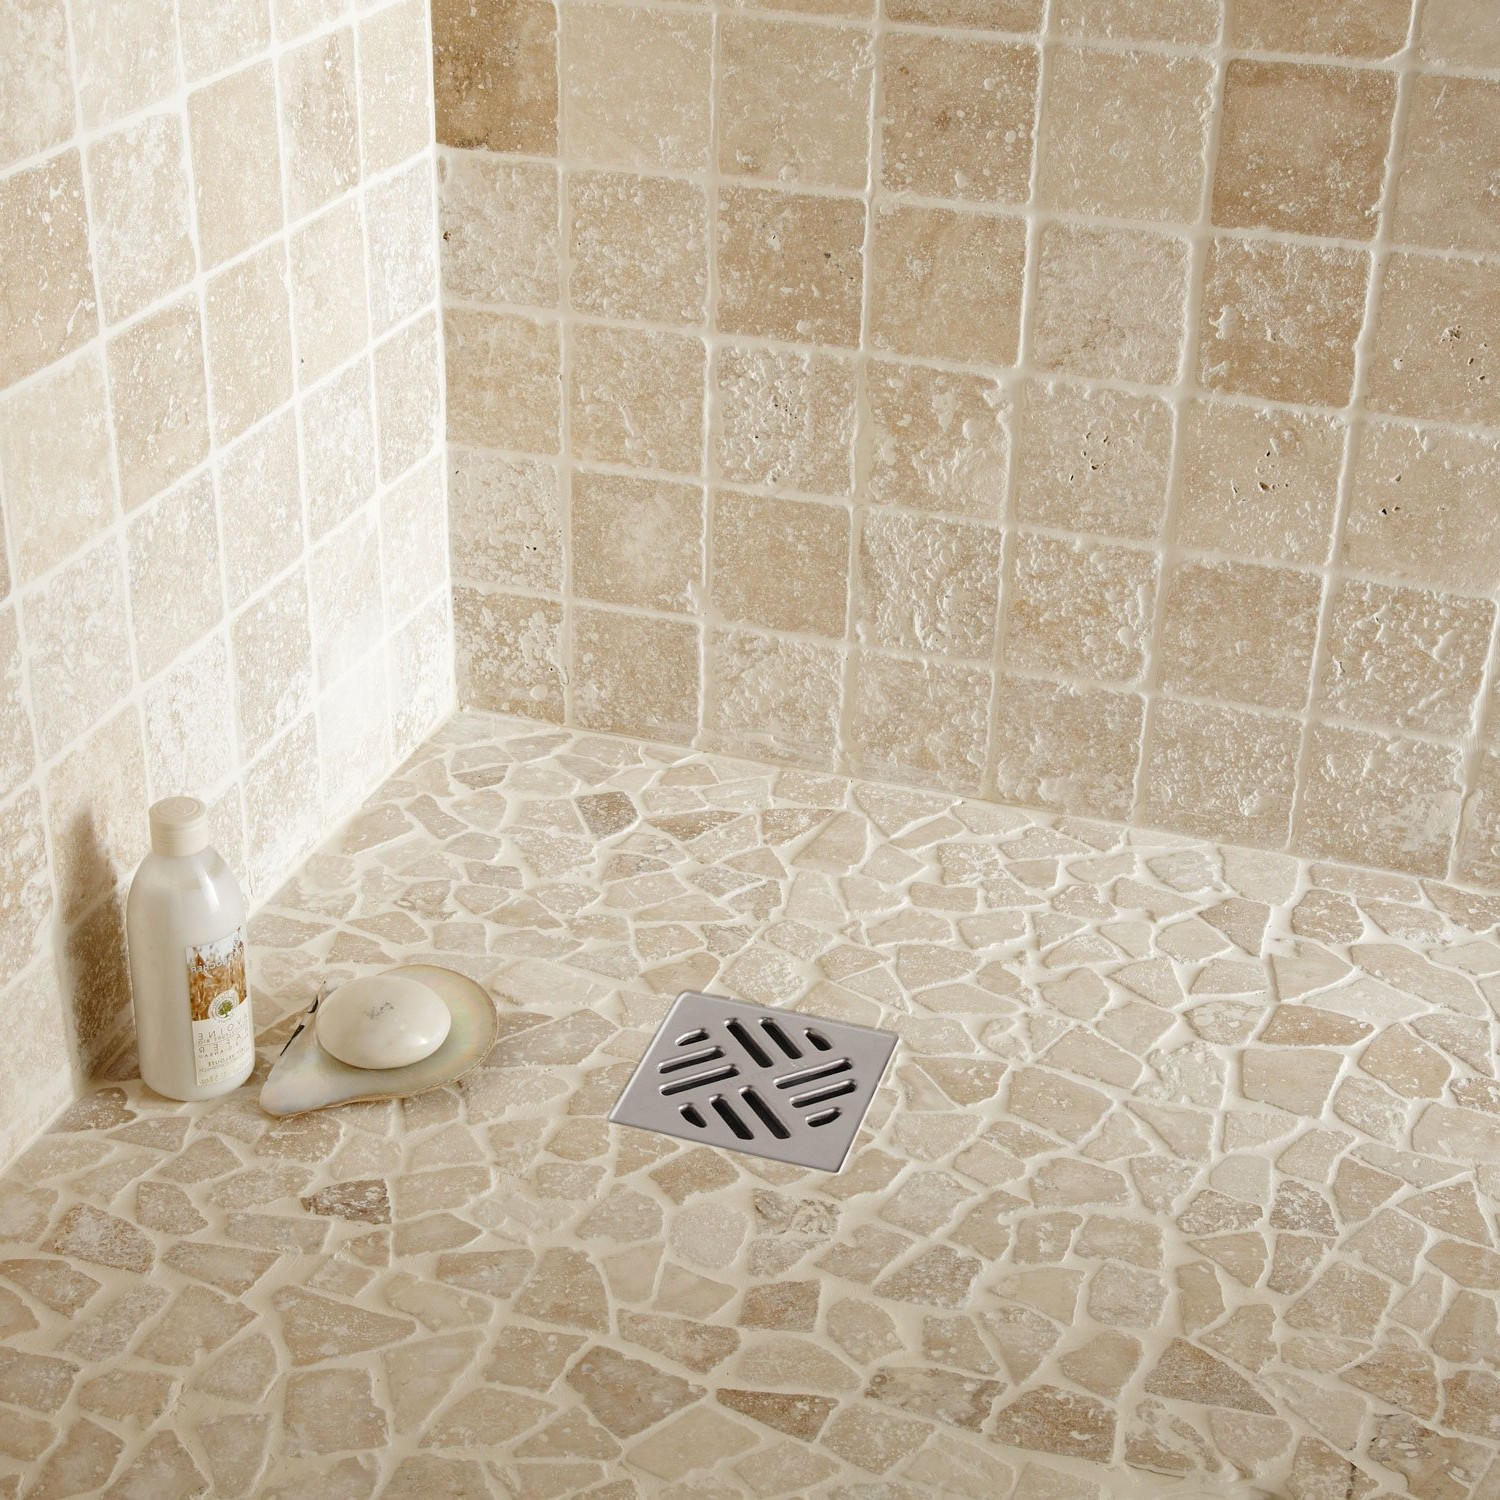 Carrelage travertin salle de bain leroy merlin carrelage for Leroy merlin mosaique salle de bain